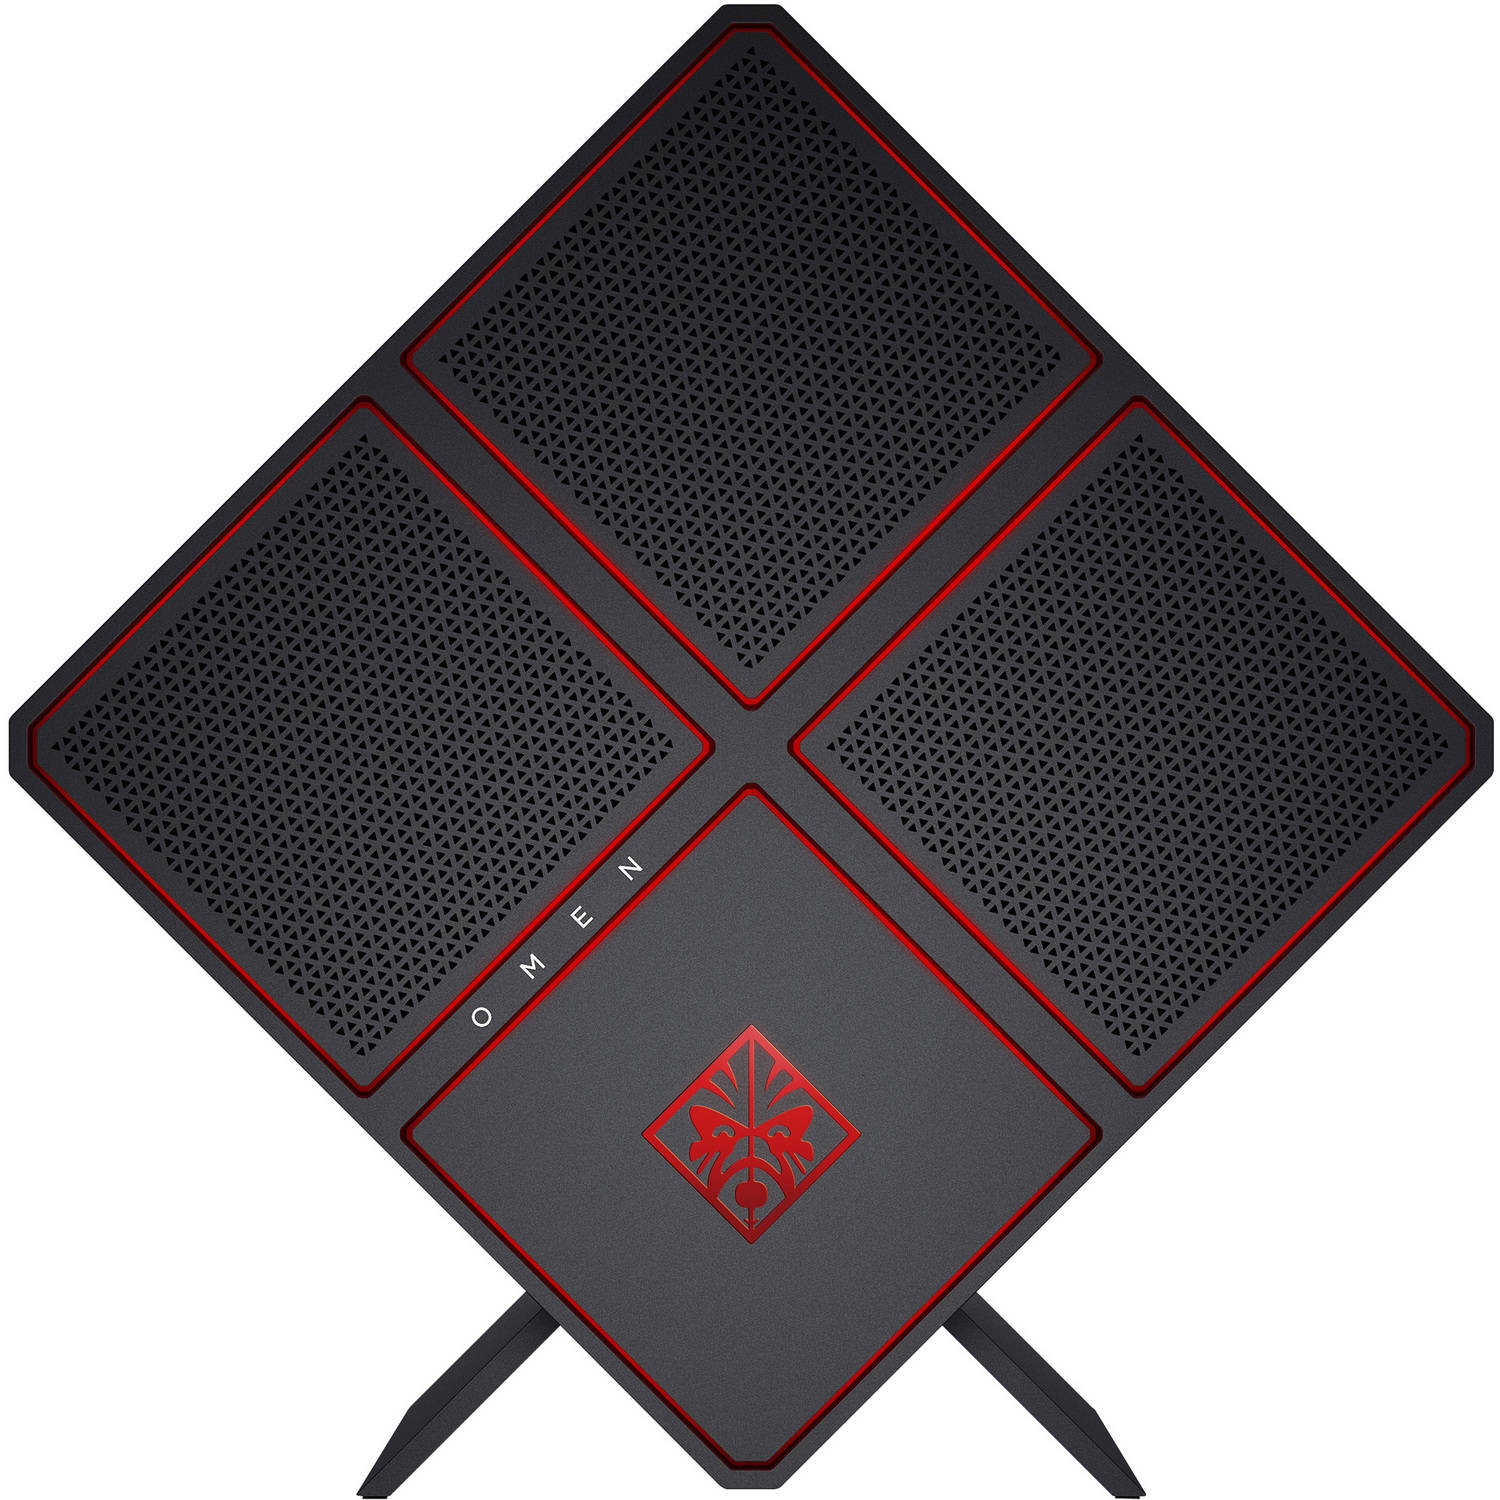 HP OMEN X 900-130 Gaming Desktop PC with Intel Core i7-7700K Processor, 16GB Memory, 256GB Solid State Drive... by HP